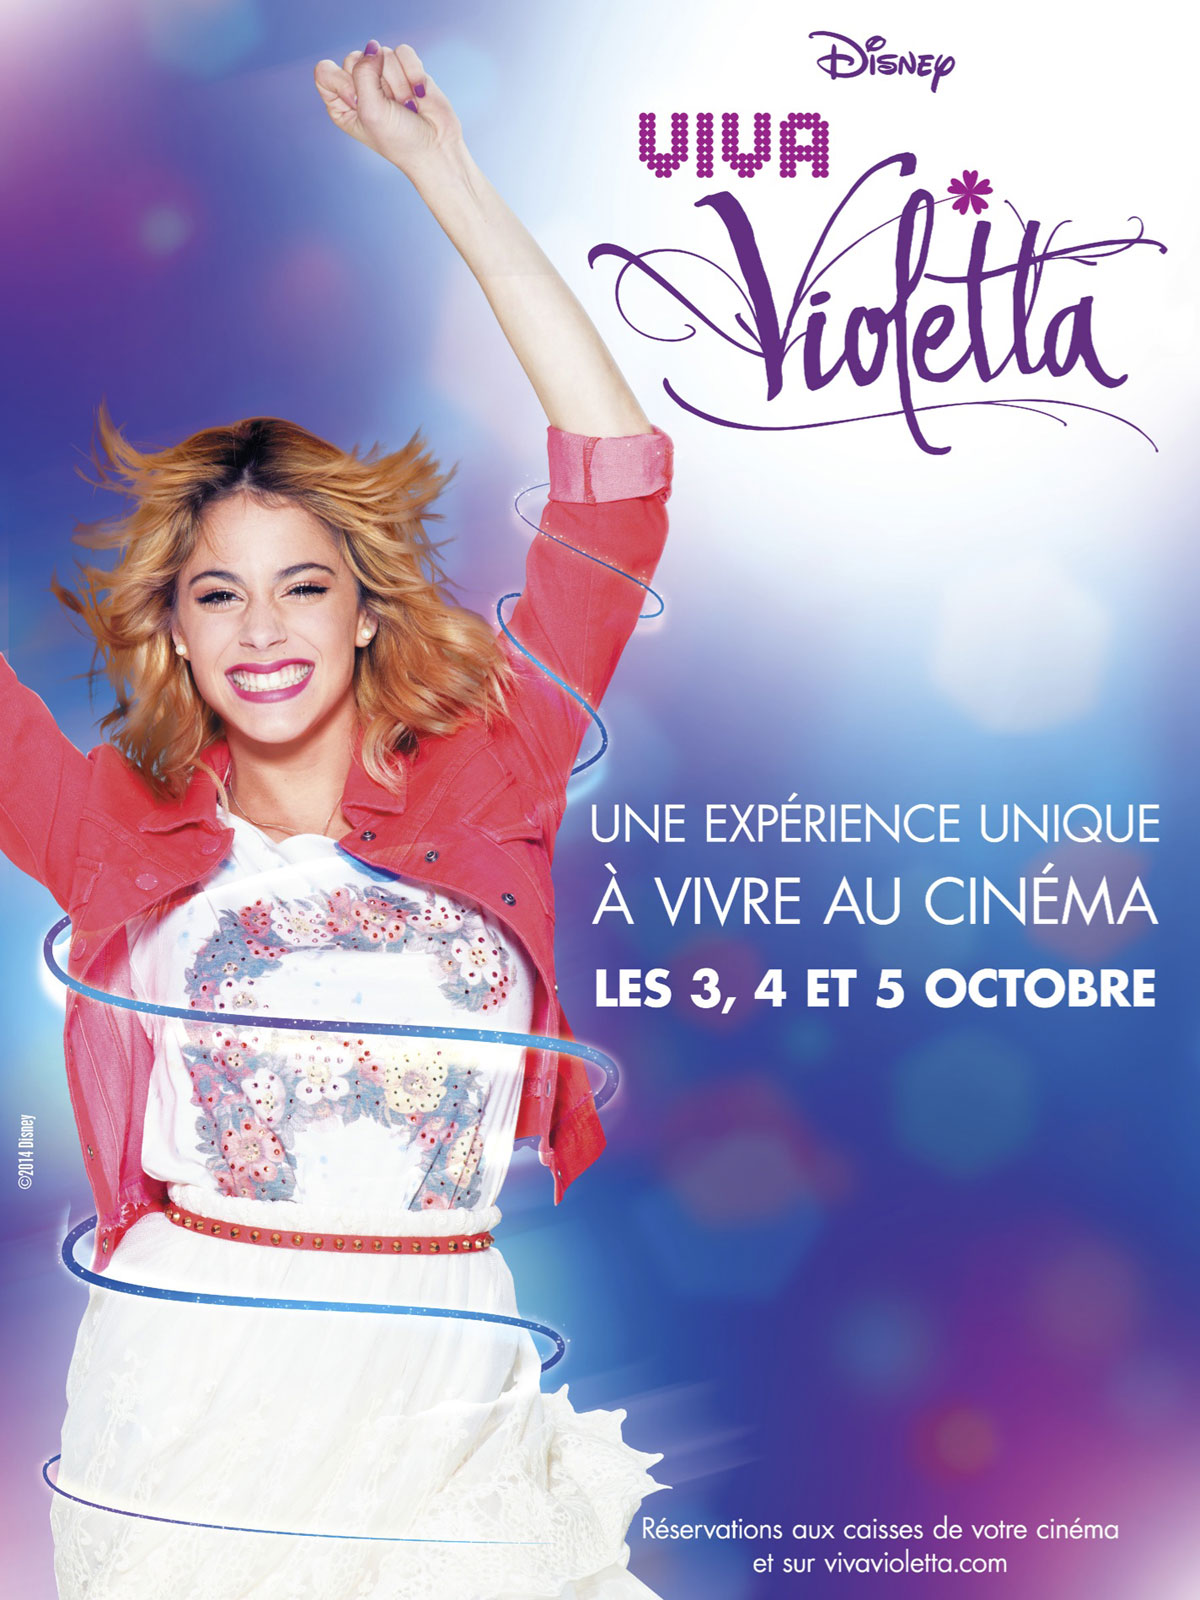 Viva violetta  (Côté Diffusion) Streaming 1080p HDLight